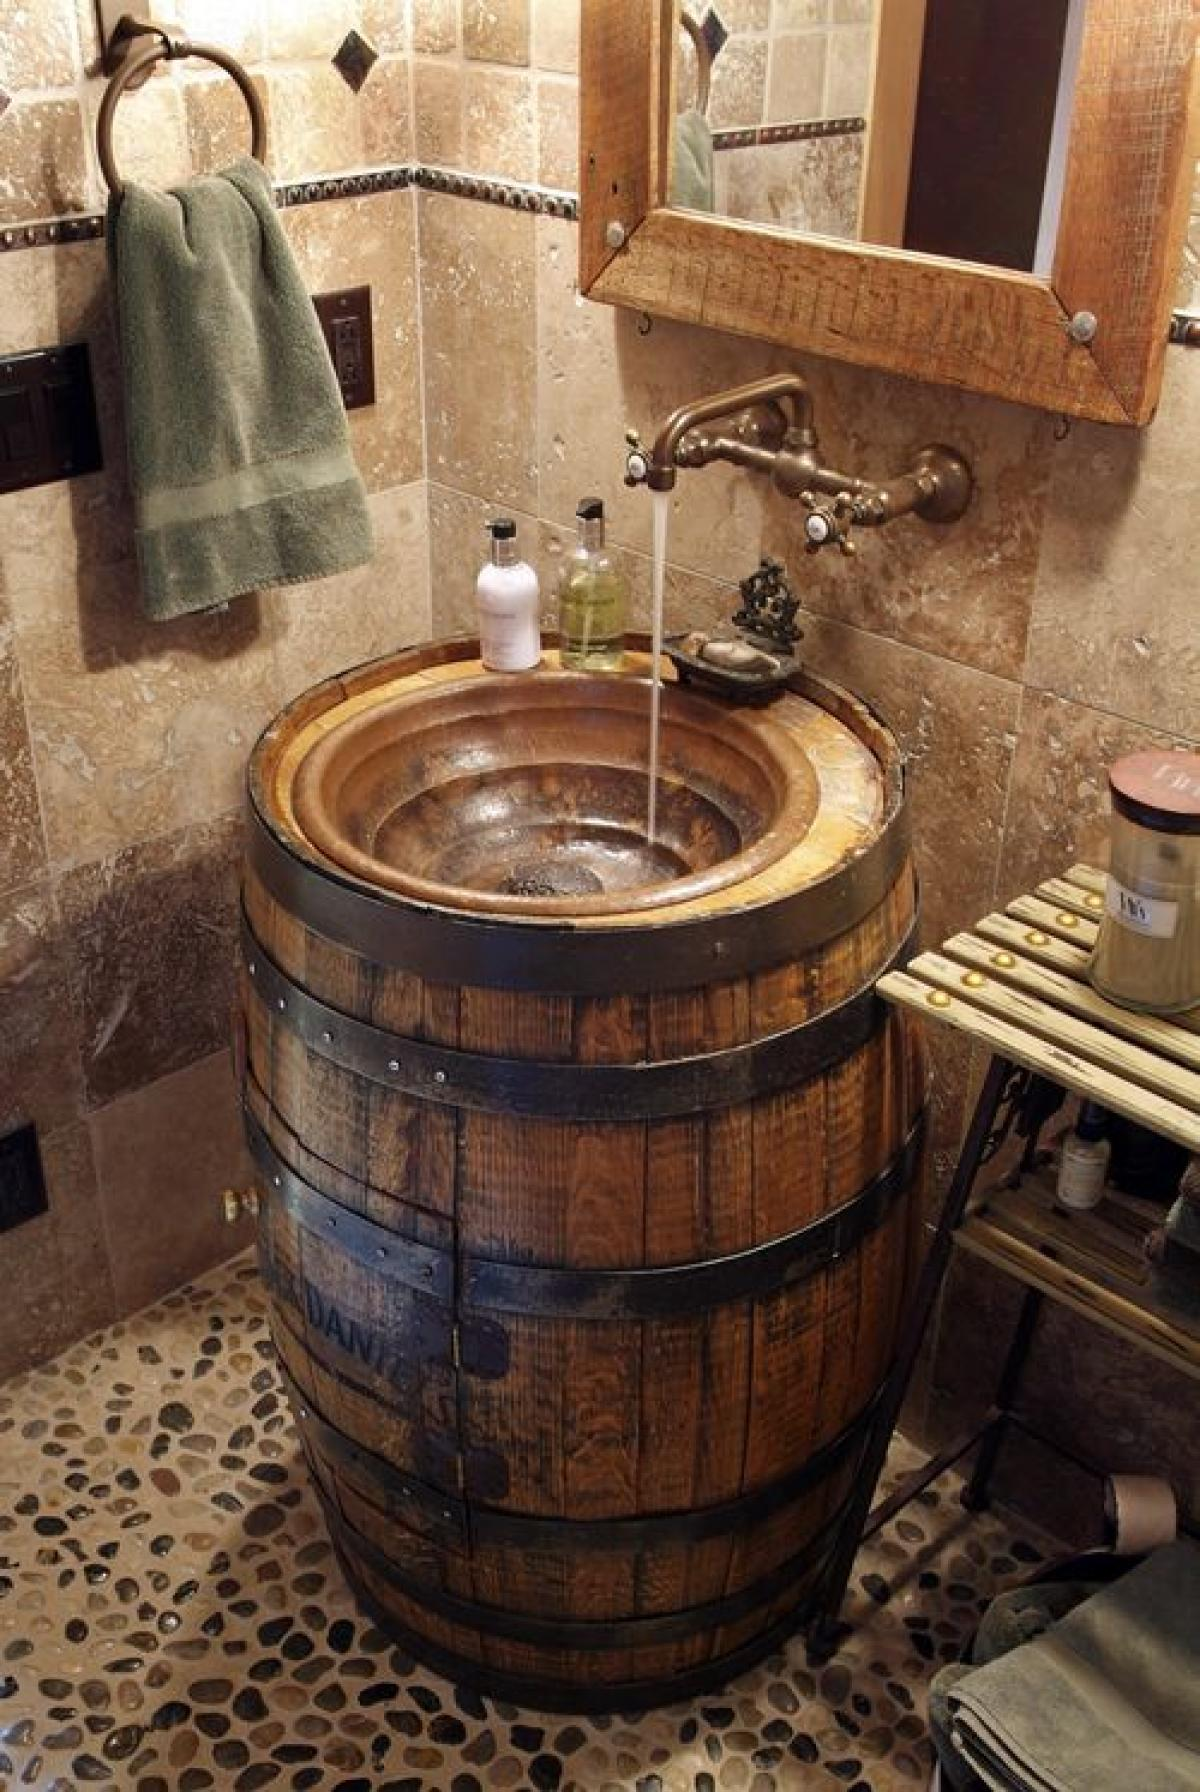 17 inspiring rustic bathroom decor ideas for cozy home for Idee deco salle de bain rustique